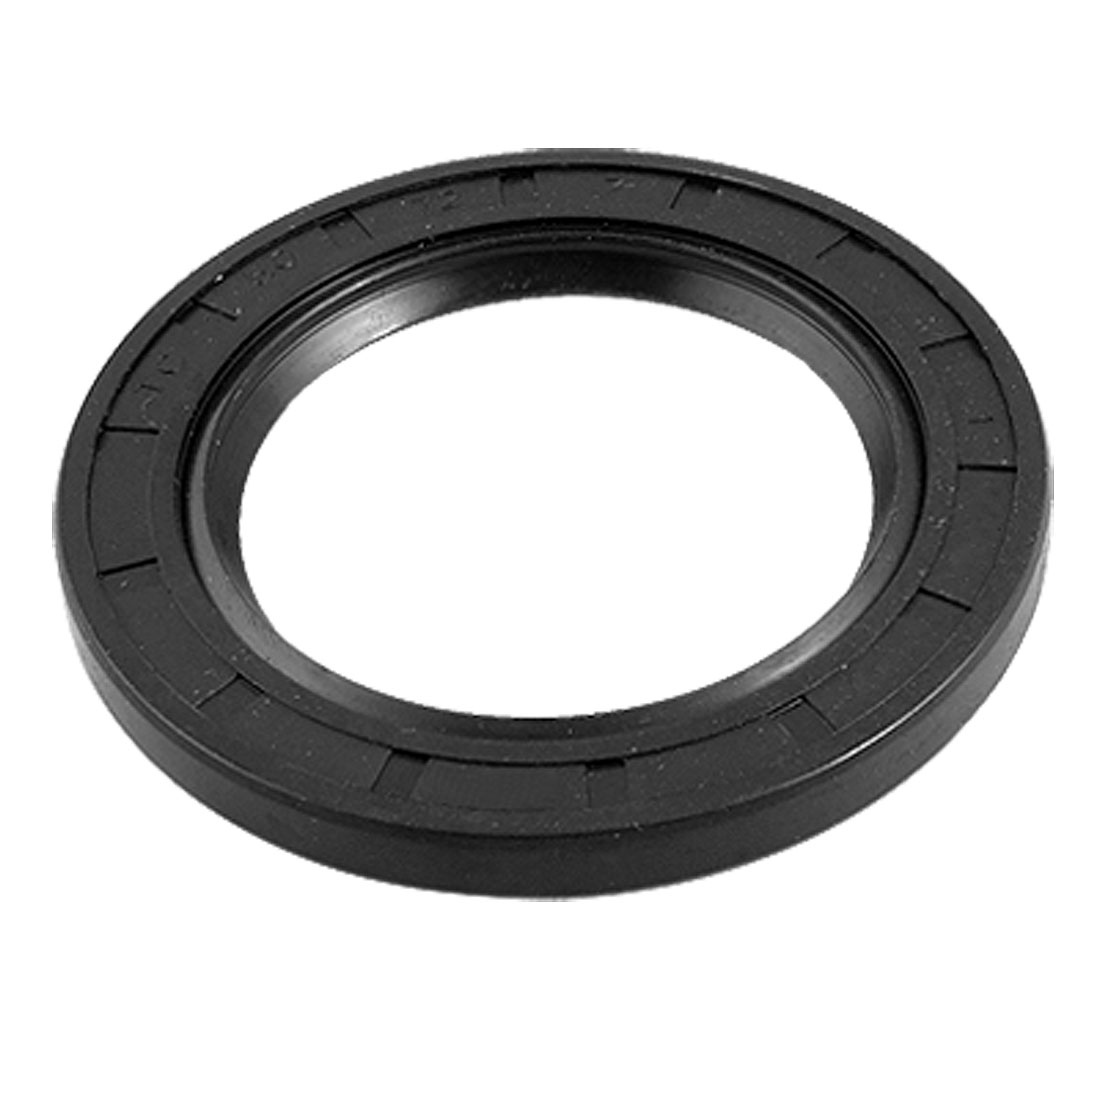 Black Rubber Spring Loaded TC Shaft Oil Seal 50mm x 72mm x 7mm